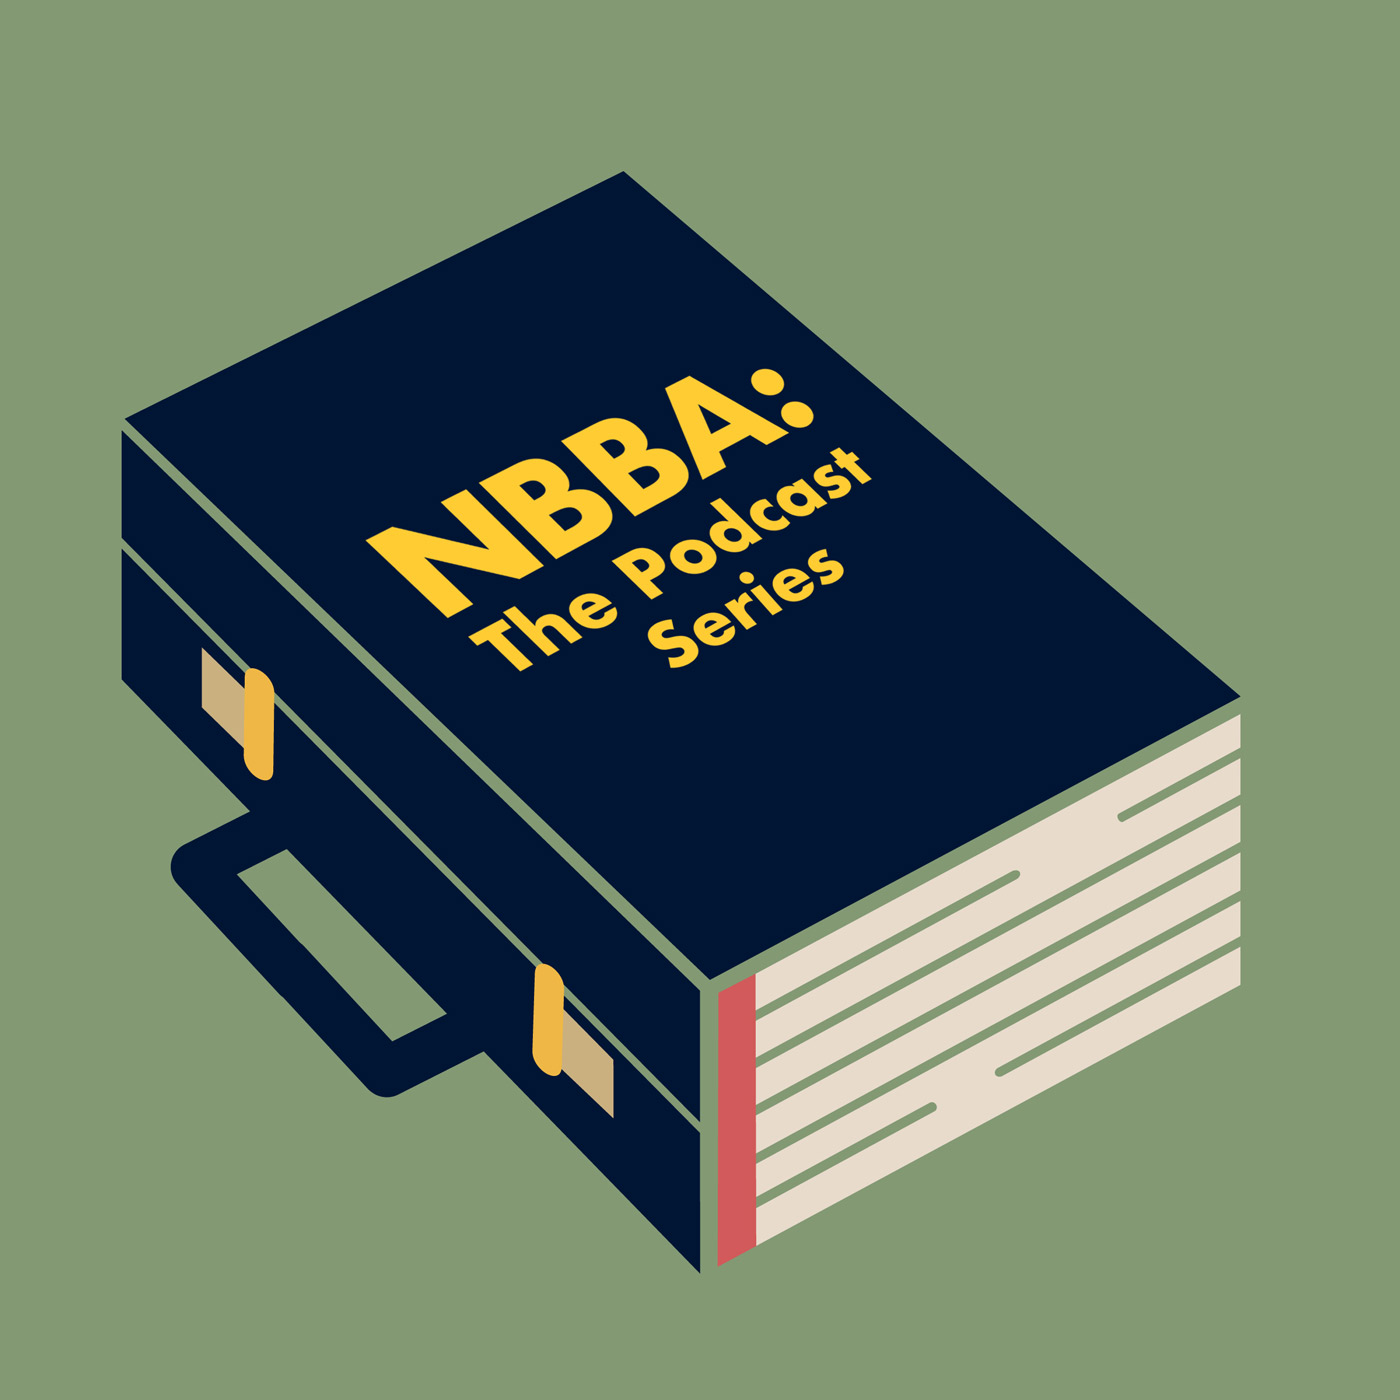 NBBA Podcast